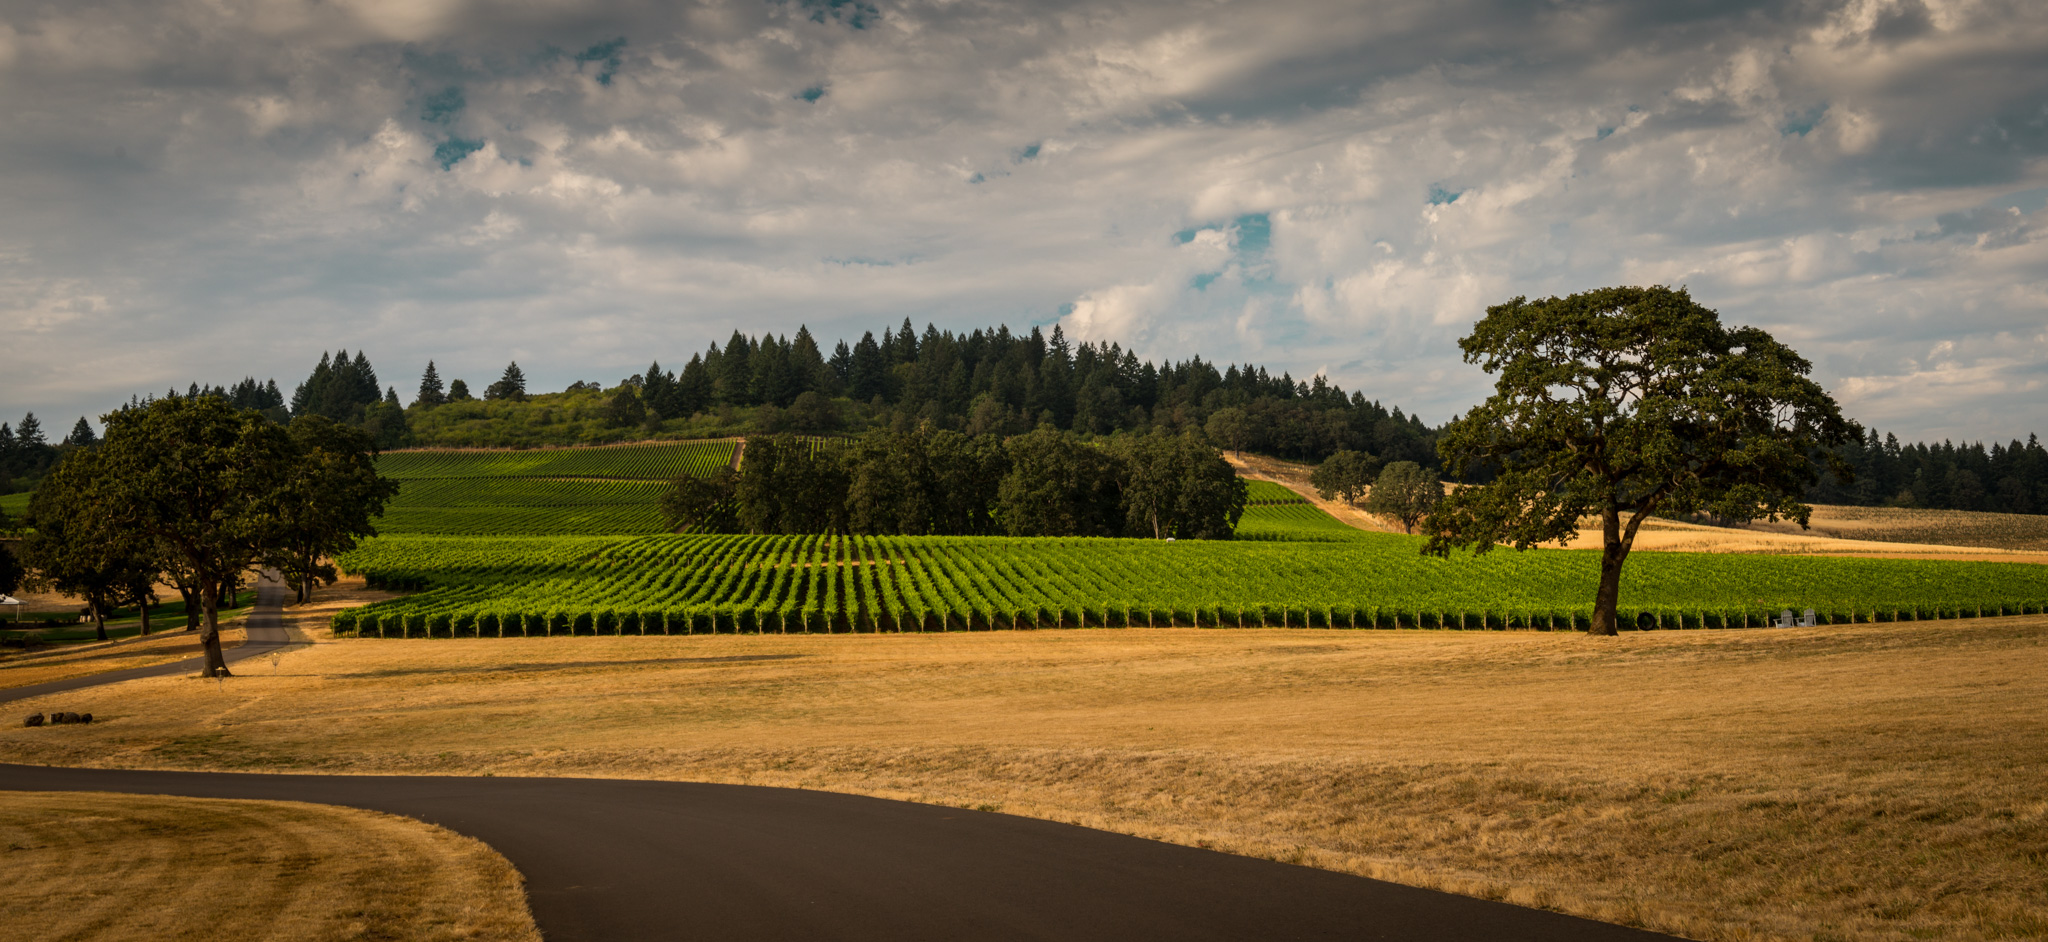 US : Oregon : Vineyards around Stoller's winery in the Dundee Hills AVA